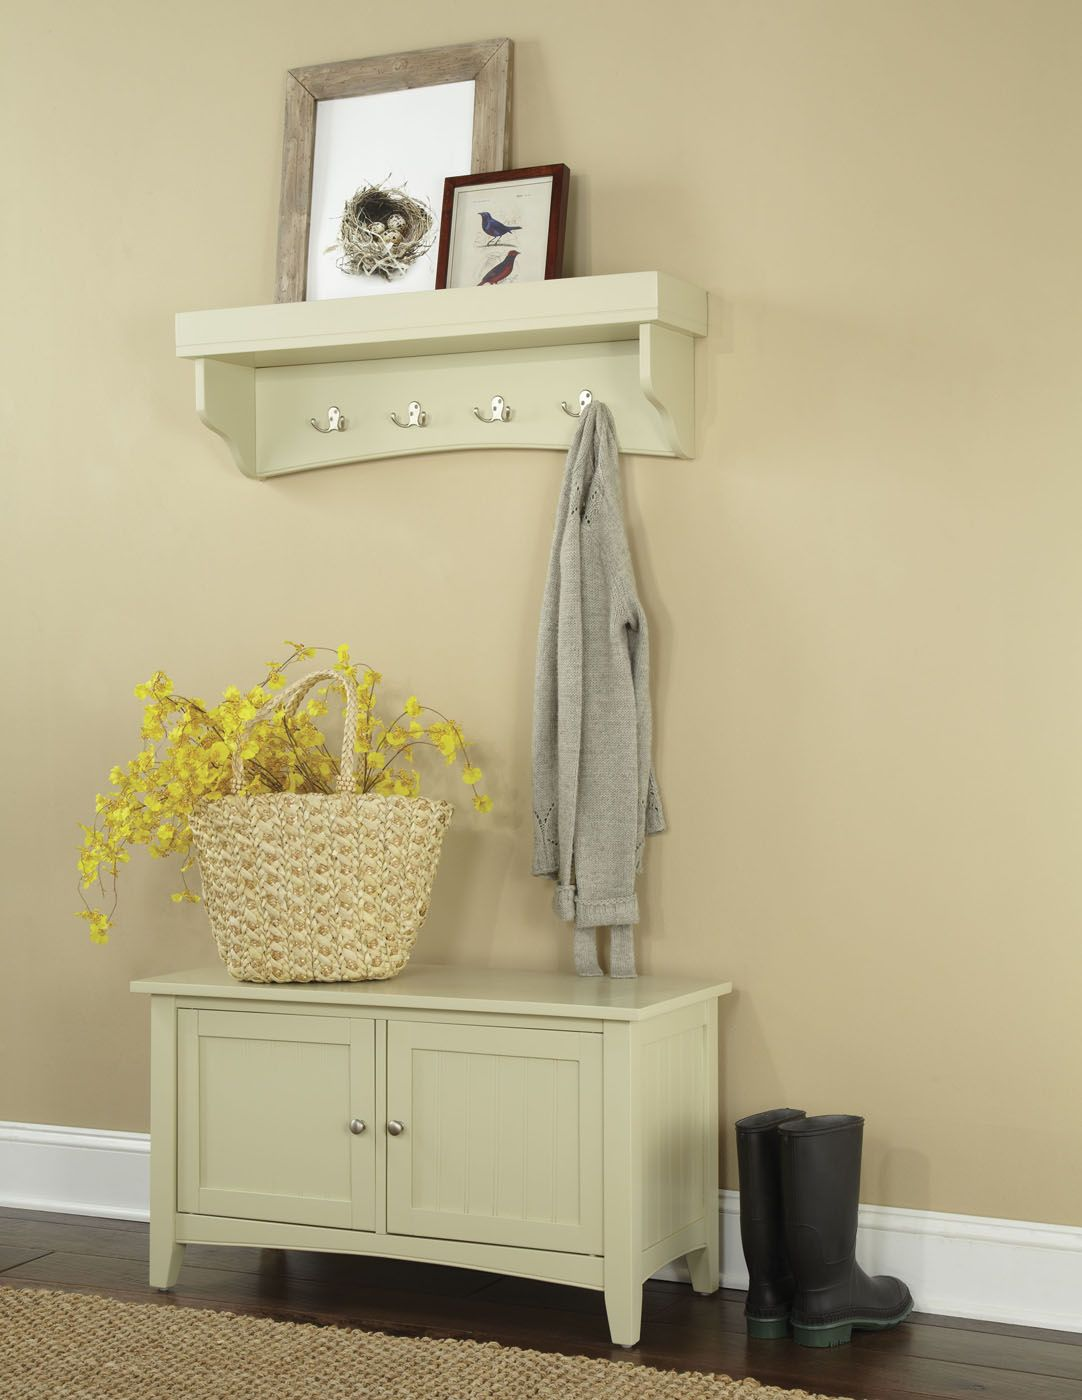 The Shaker Cottage wall hanging Coat Hook with Tray / Shelf and ...